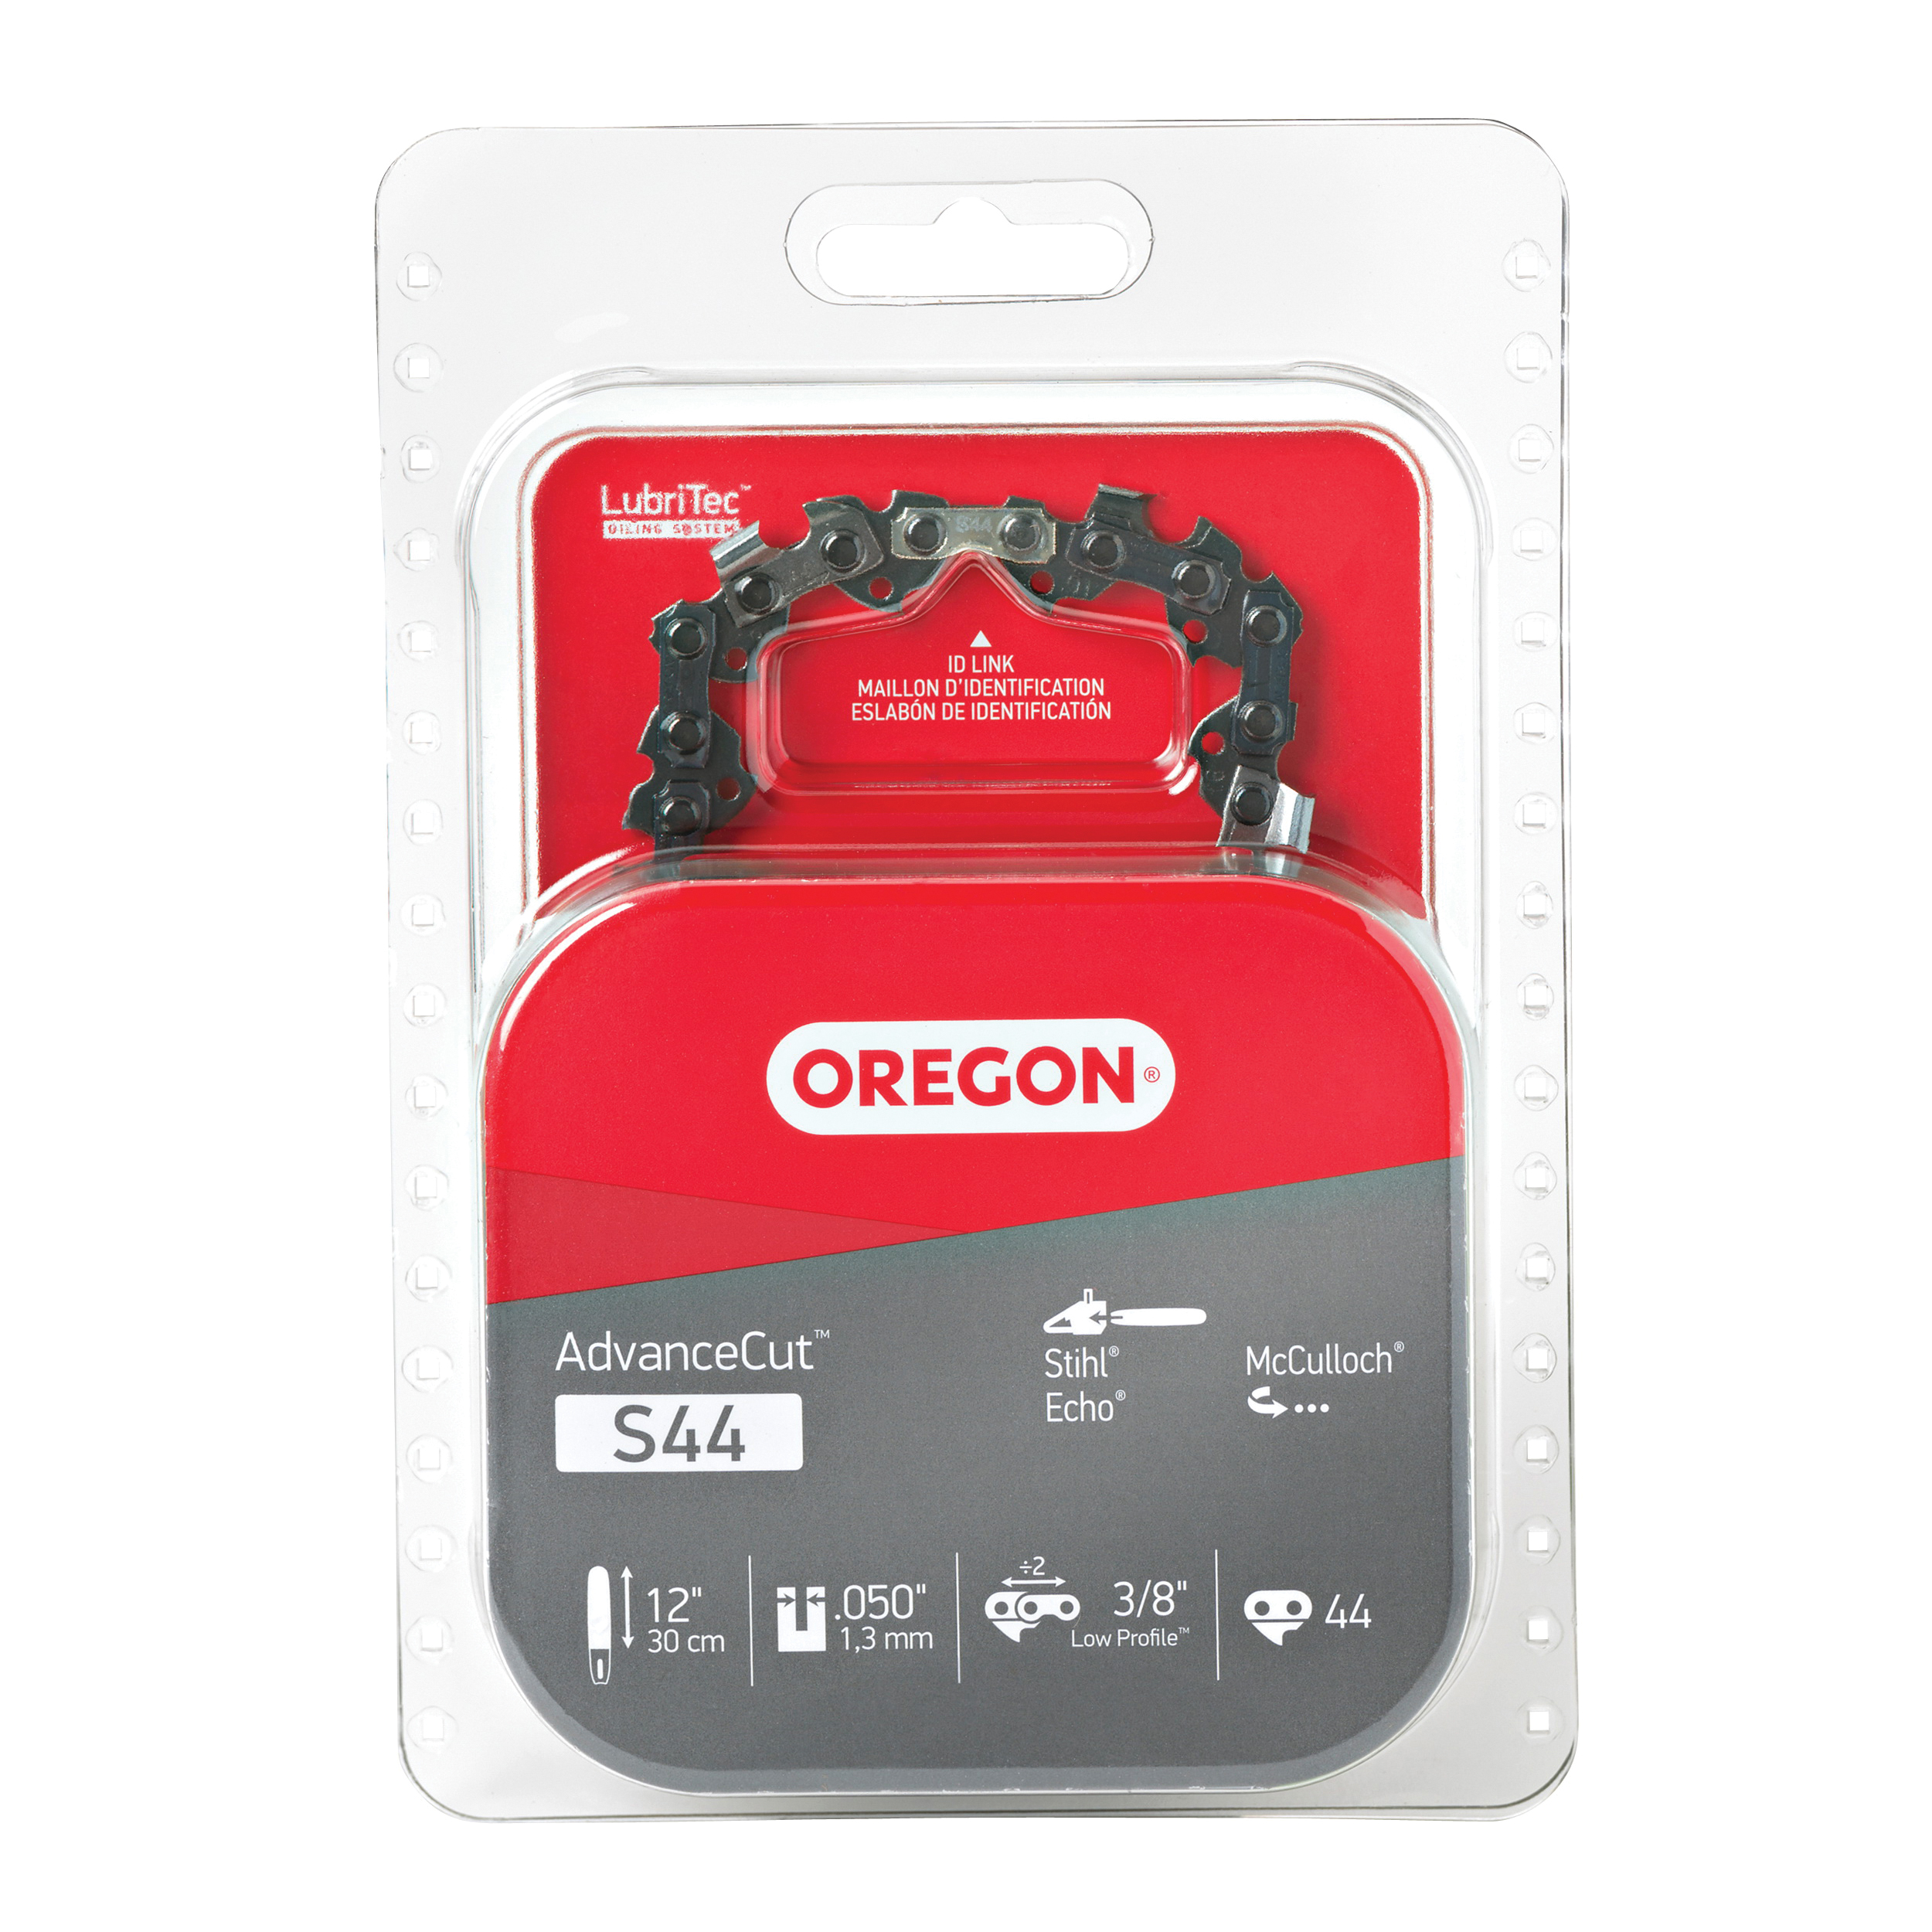 Picture of Oregon S44 Chainsaw Chain, 12 in L Bar, 0.05 Gauge, 3/8 in TPI/Pitch, 44 -Link